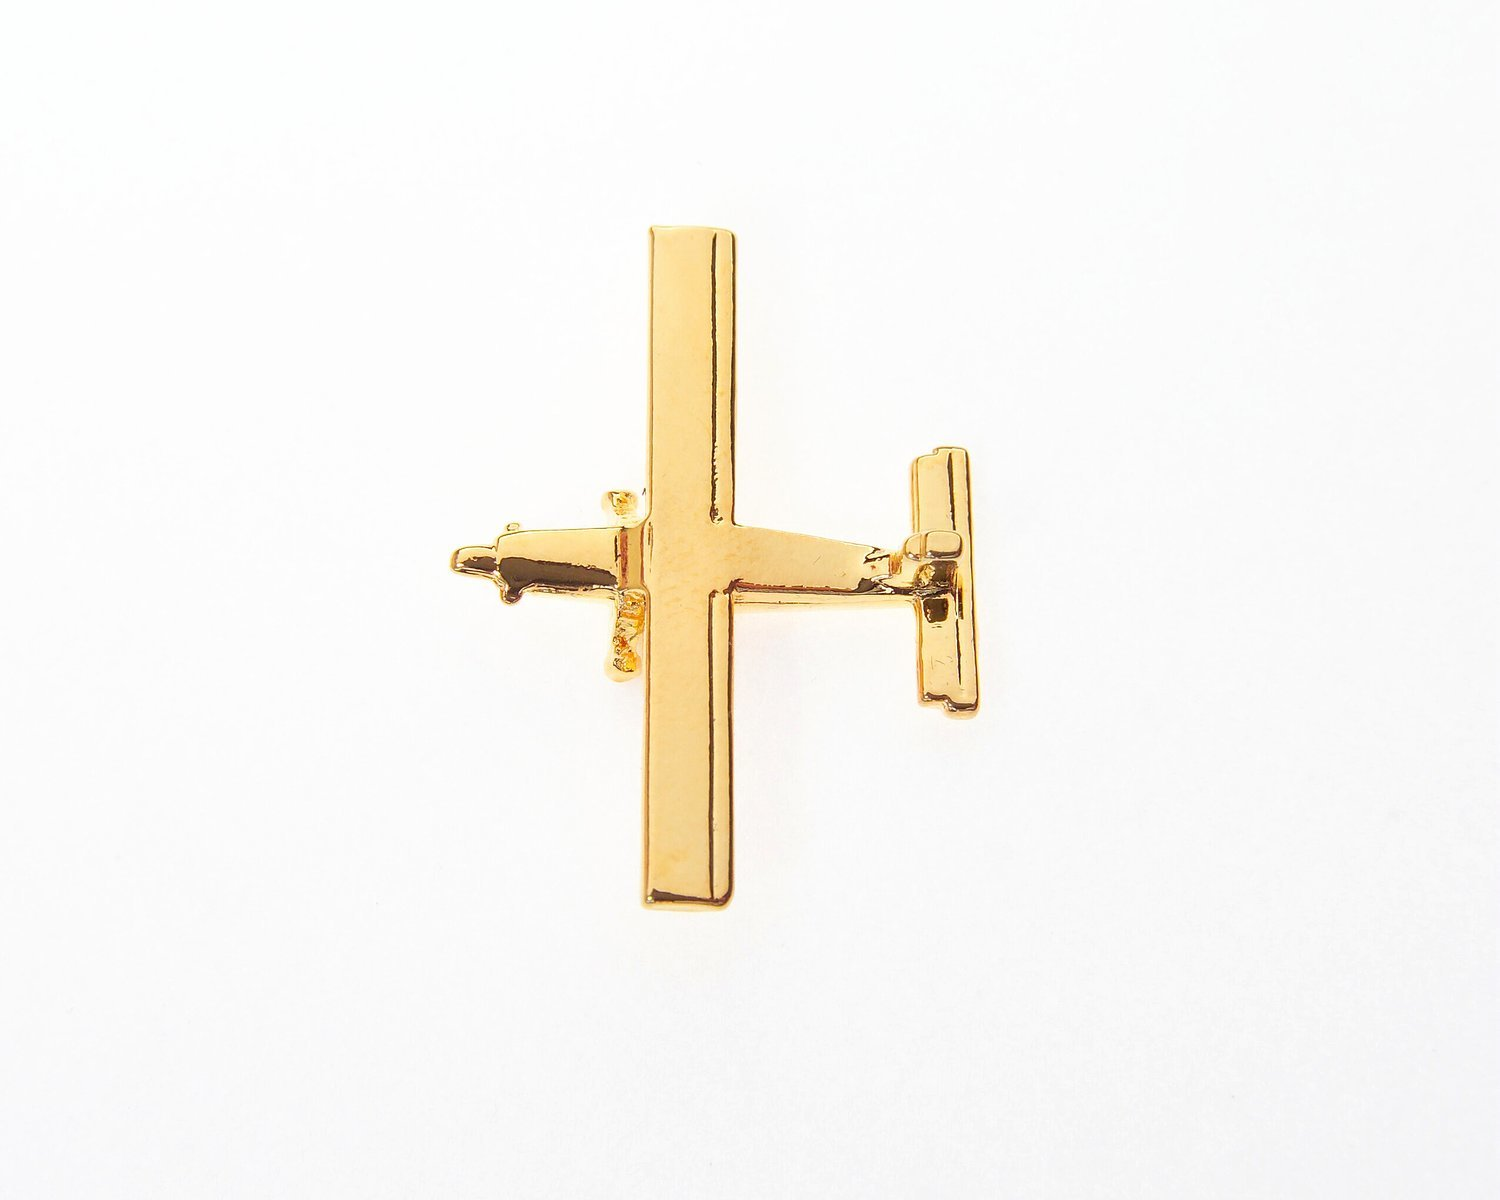 Pilatus Pc6 Gold Plated Tie / Lapel Pin